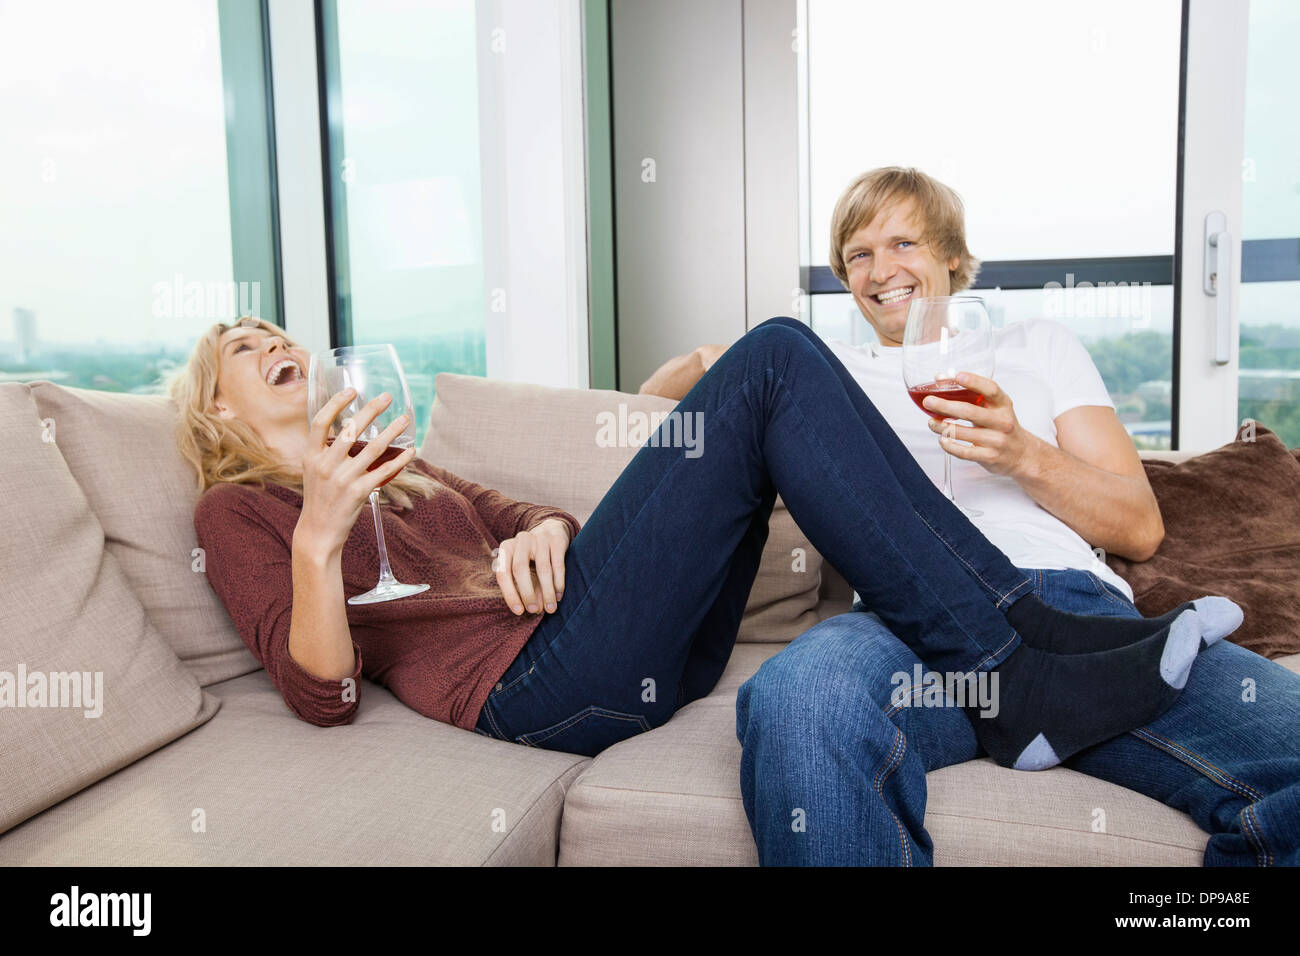 Cheerful relaxed couple with wine glasses in living room at home - Stock Image